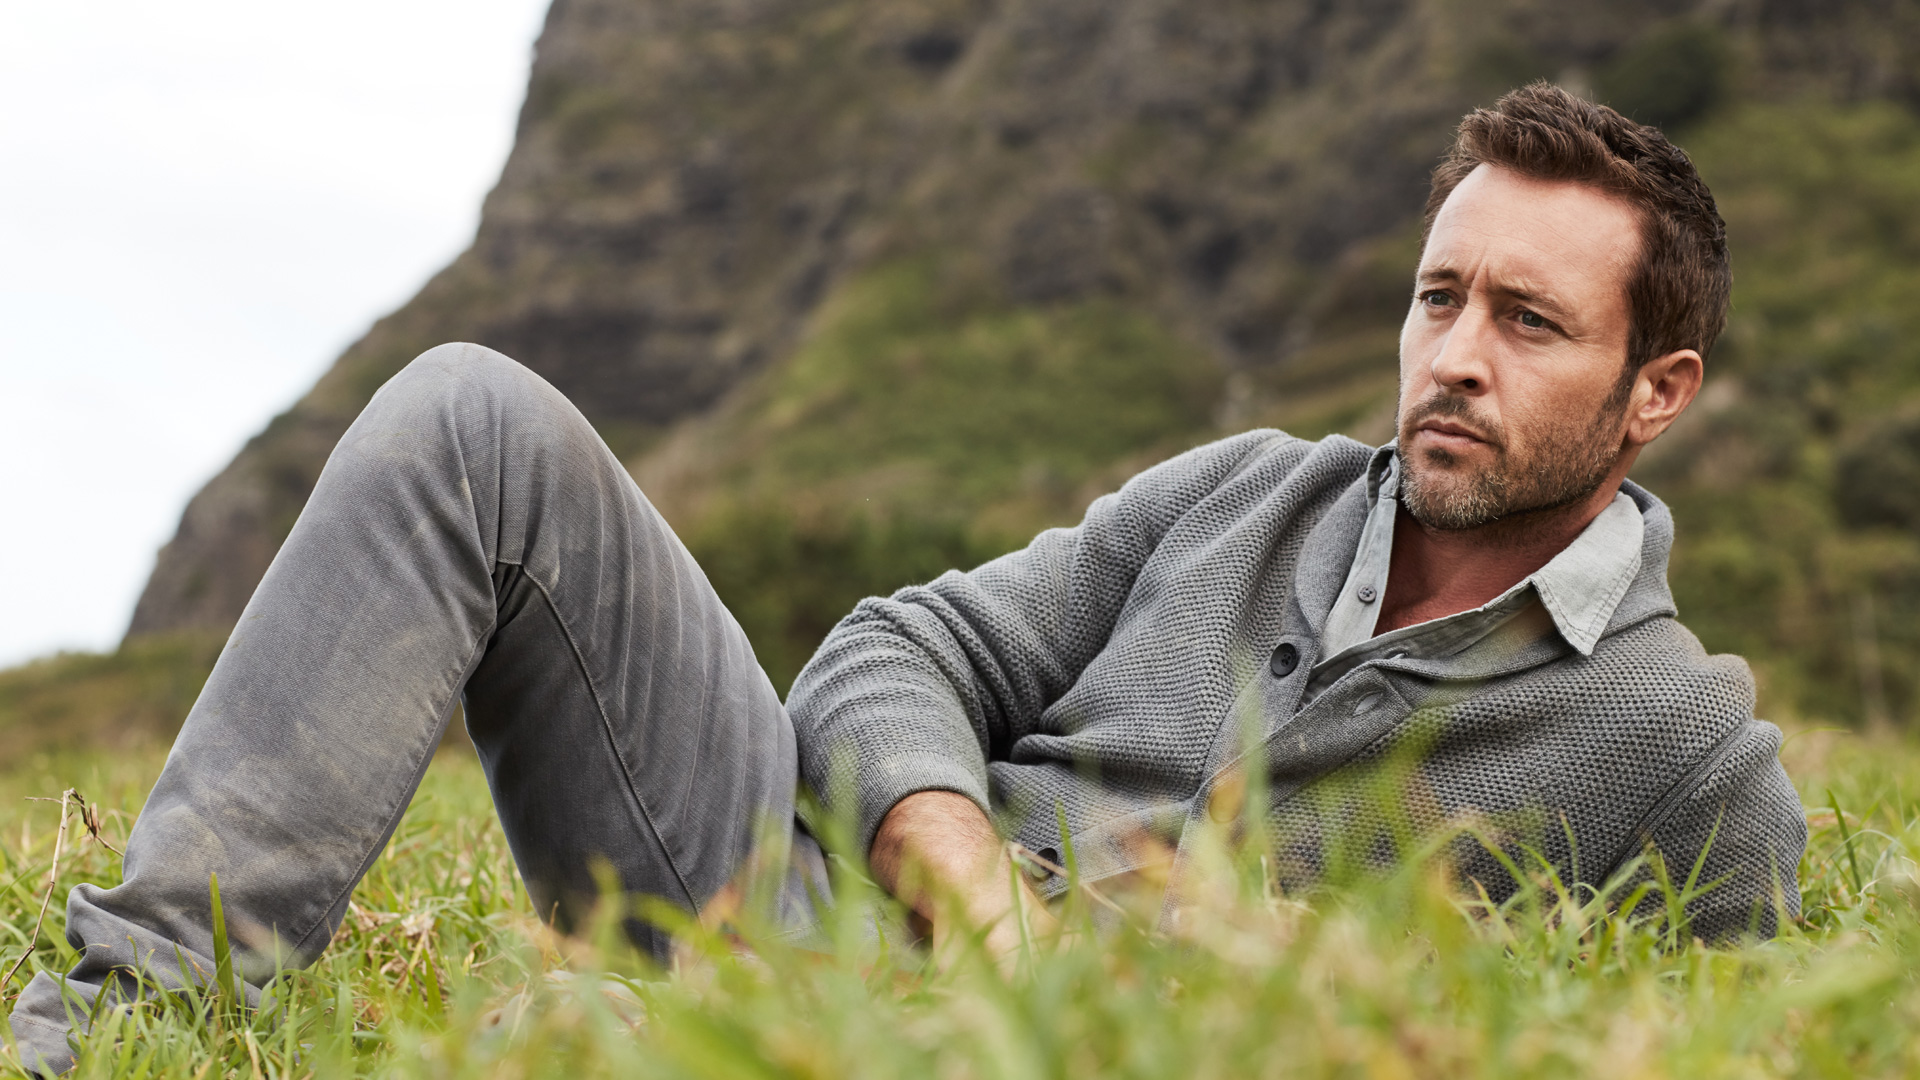 Alex O'Loughlin communes with nature